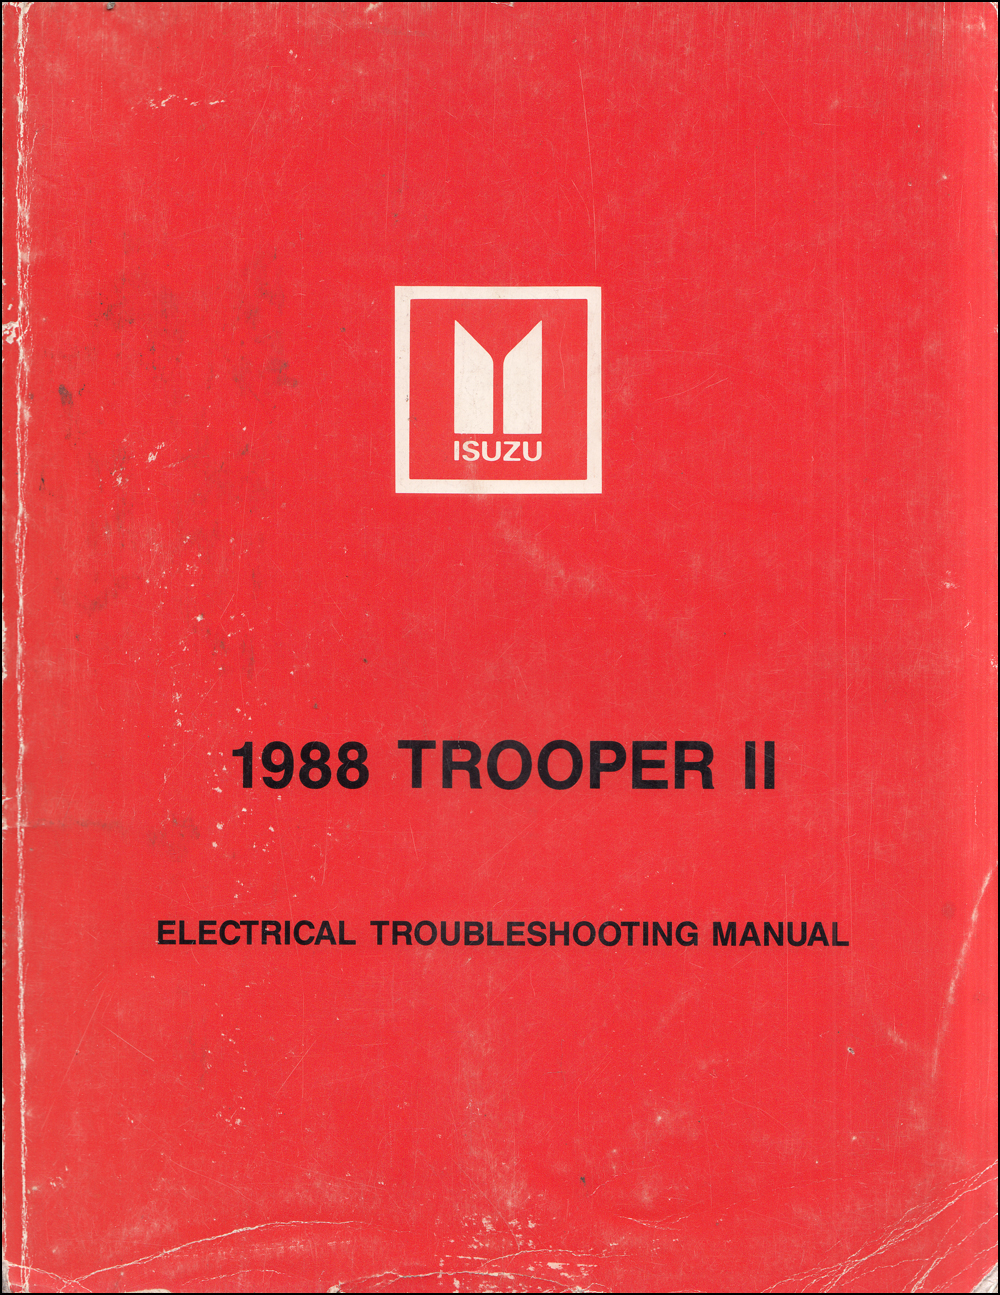 medium resolution of 1988 isuzu trooper ii electrical troubleshooting manual original